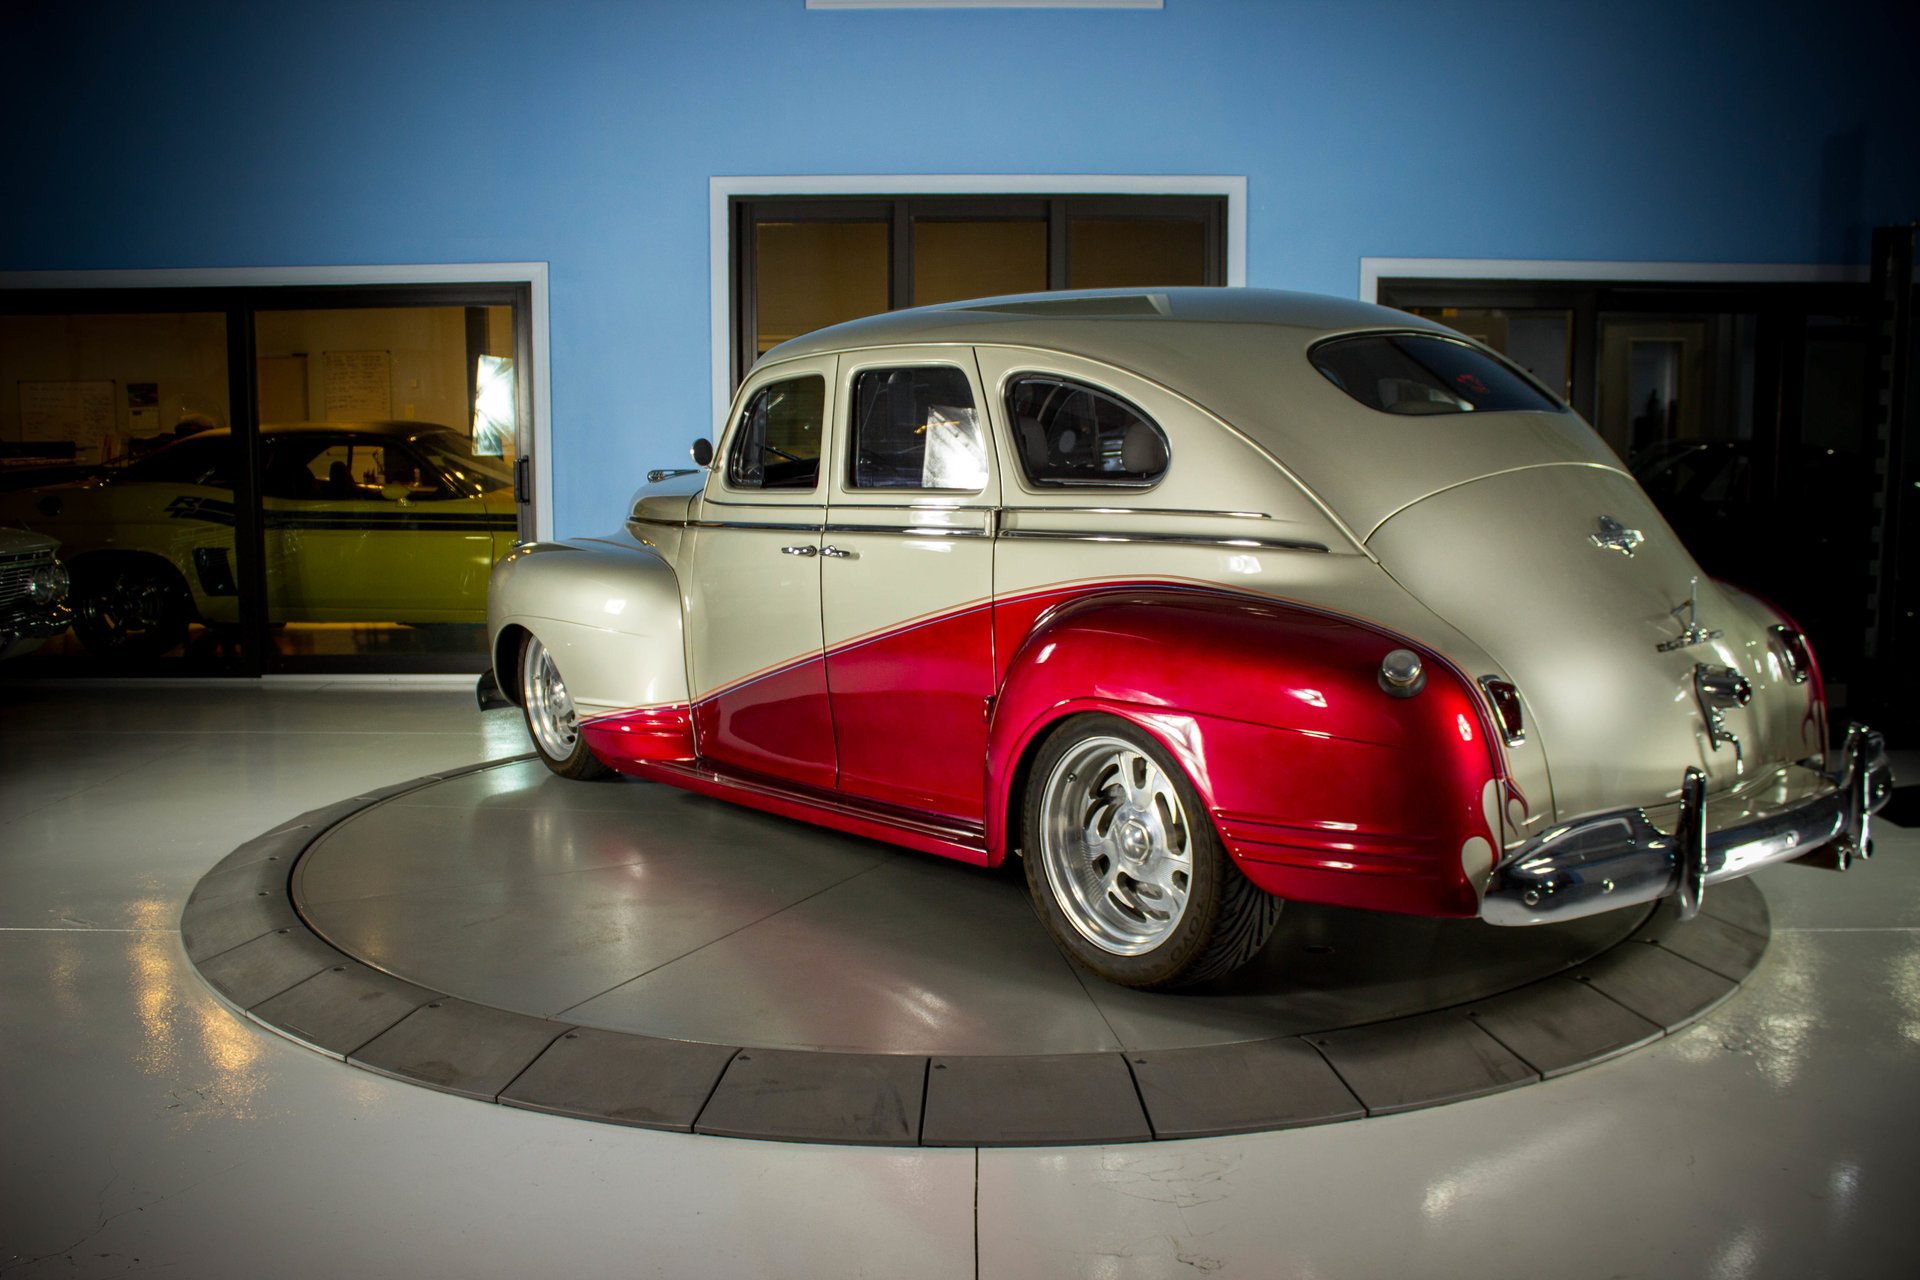 1941 Plymouth P12 Special Deluxe Classic Cars Used For Sale Business Coupe